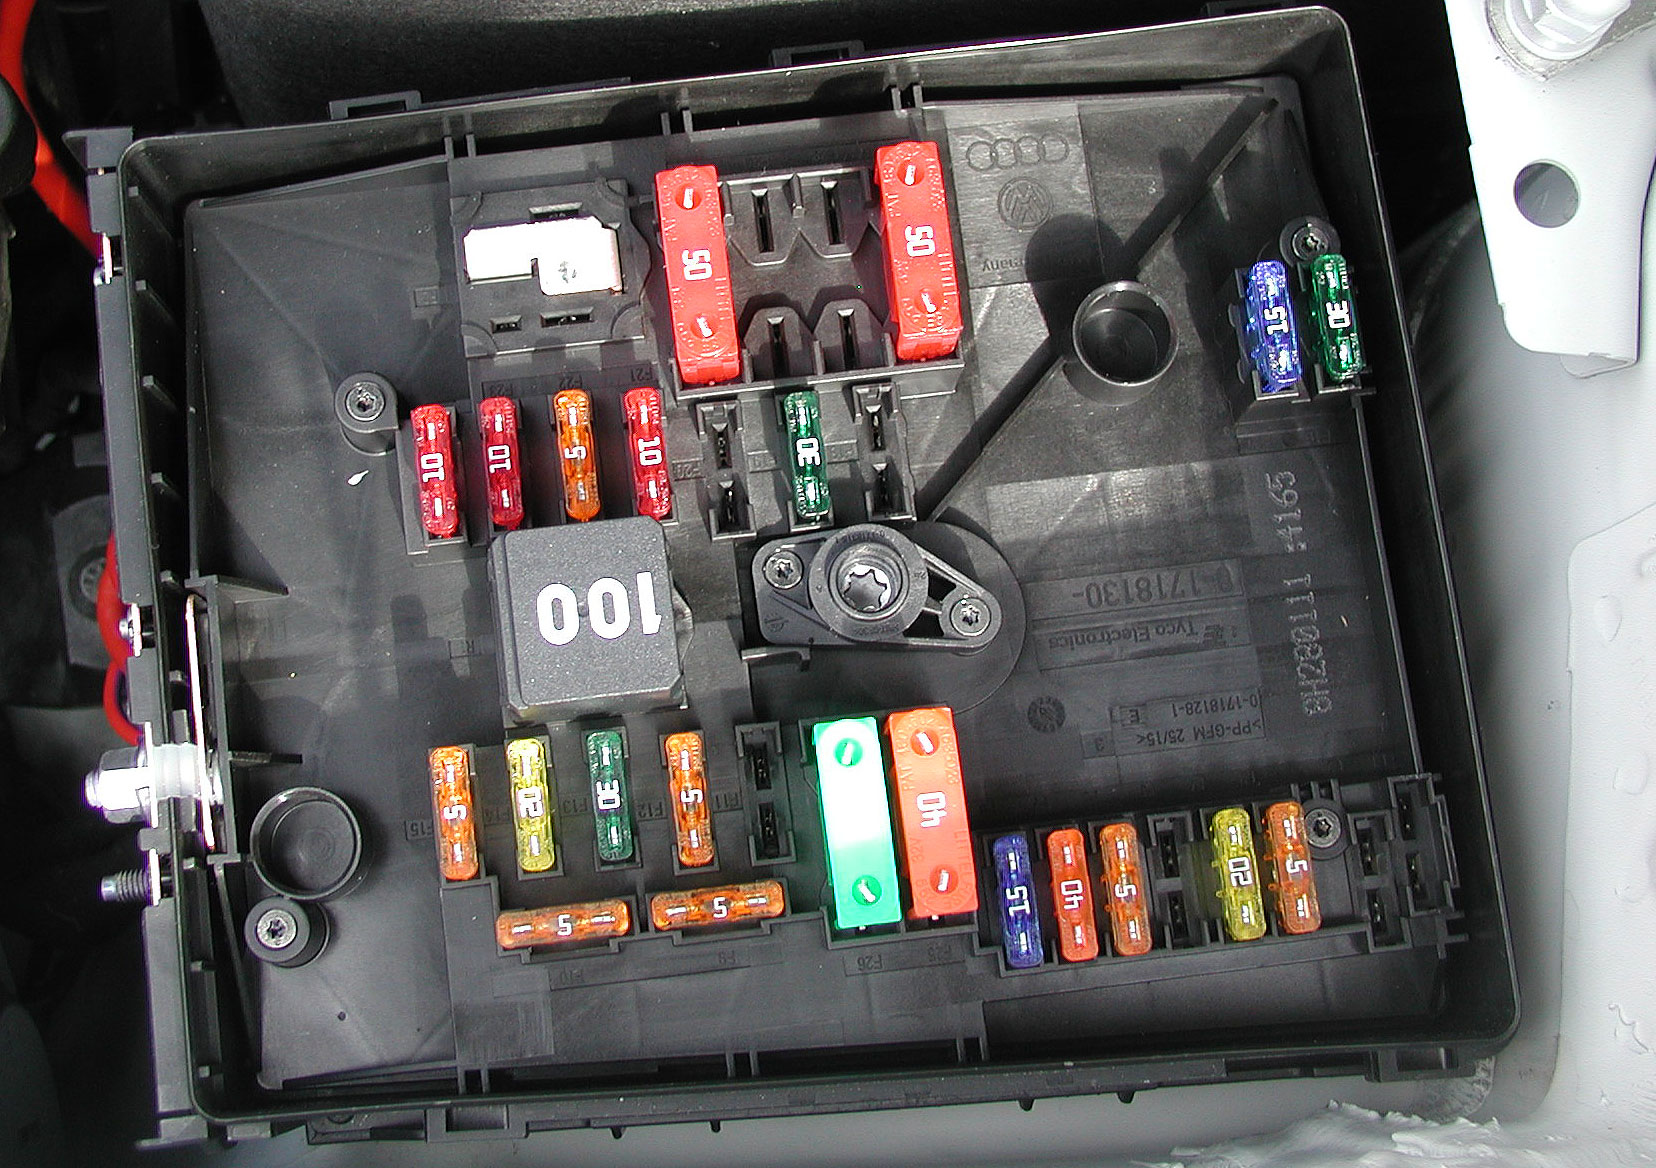 Vw Golf Tdi Fuse Box Electronic Wiring Diagrams Diagram For 2002 Volkswagen Jetta 2011 Picture Please Tdiclub Forums